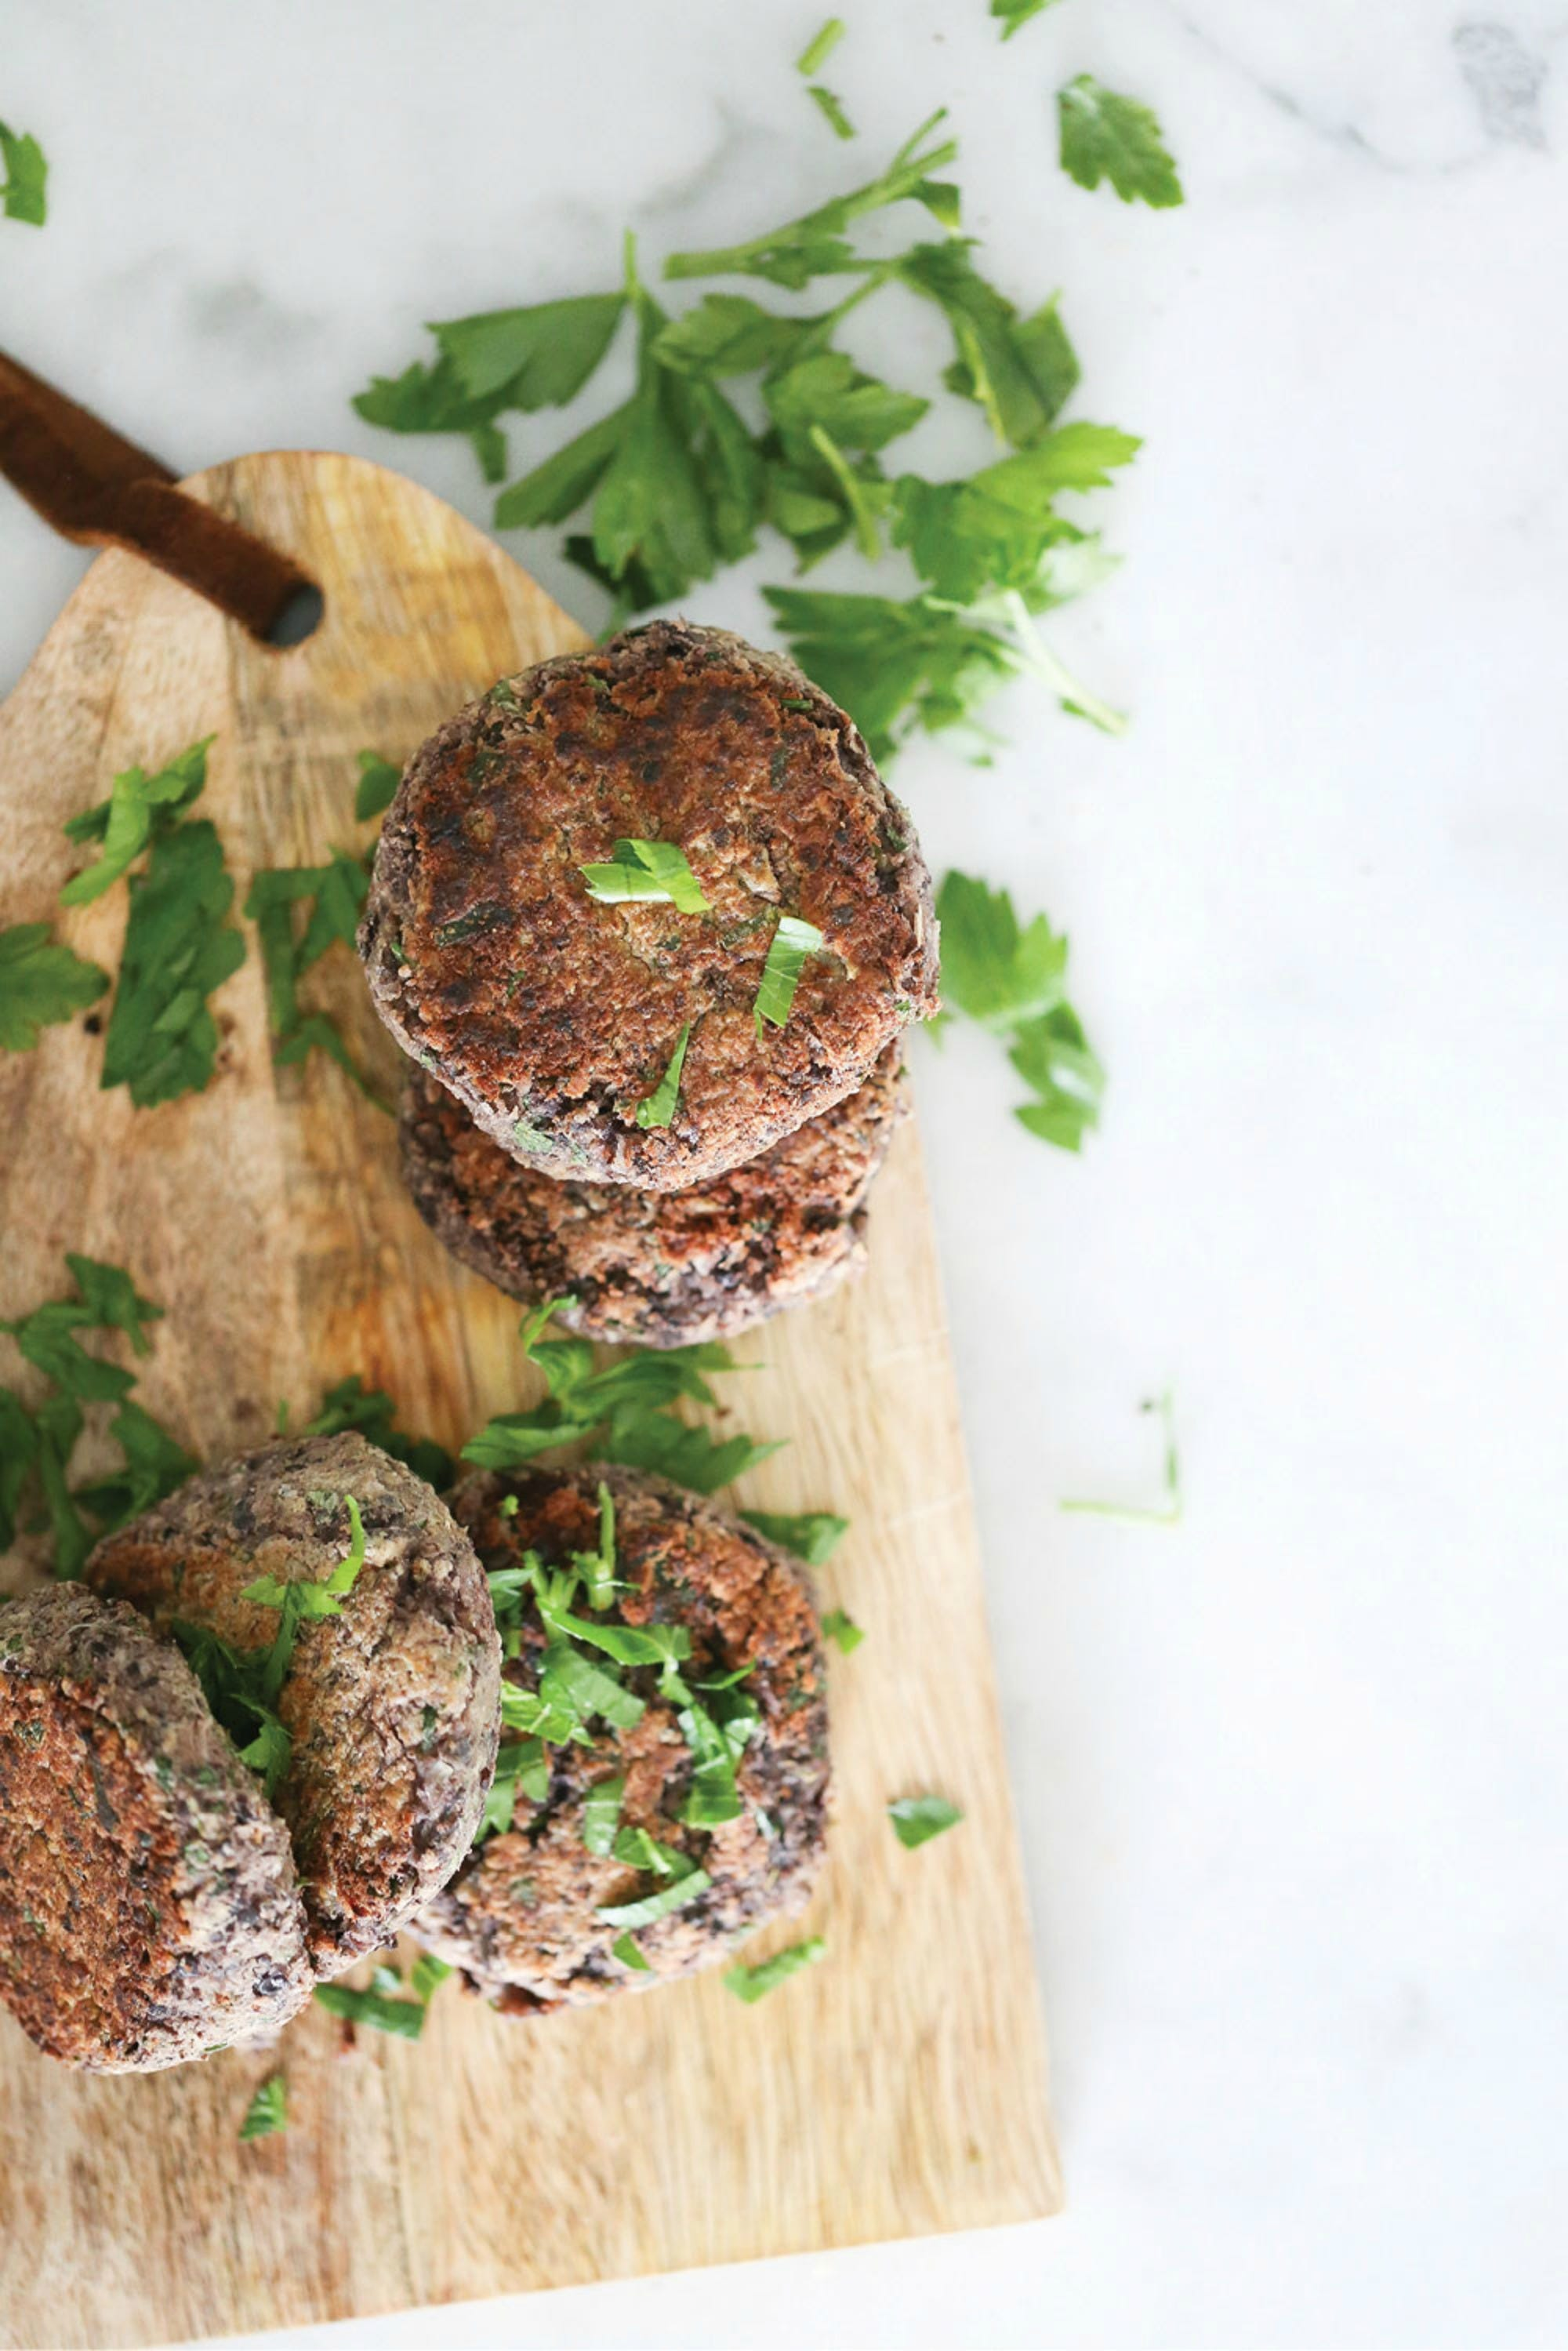 8 Black Bean Burgers That Are Worth Going Vegetarian For